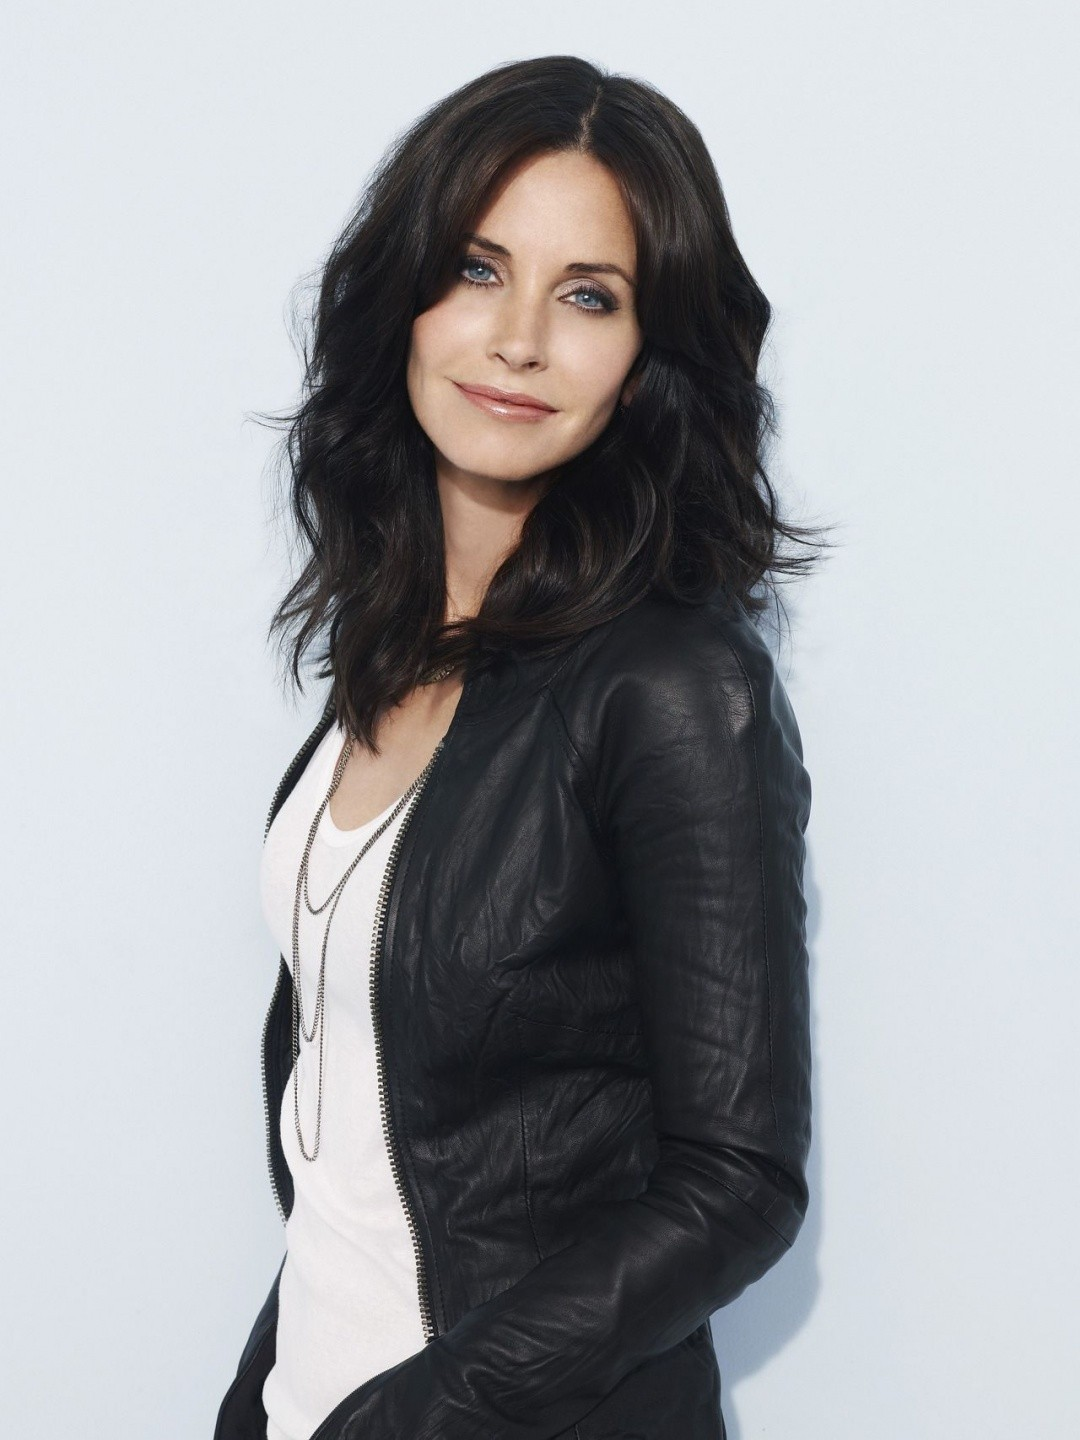 Courtney Cox 10 Celebrities with the Extremely Gross Hygiene Practices